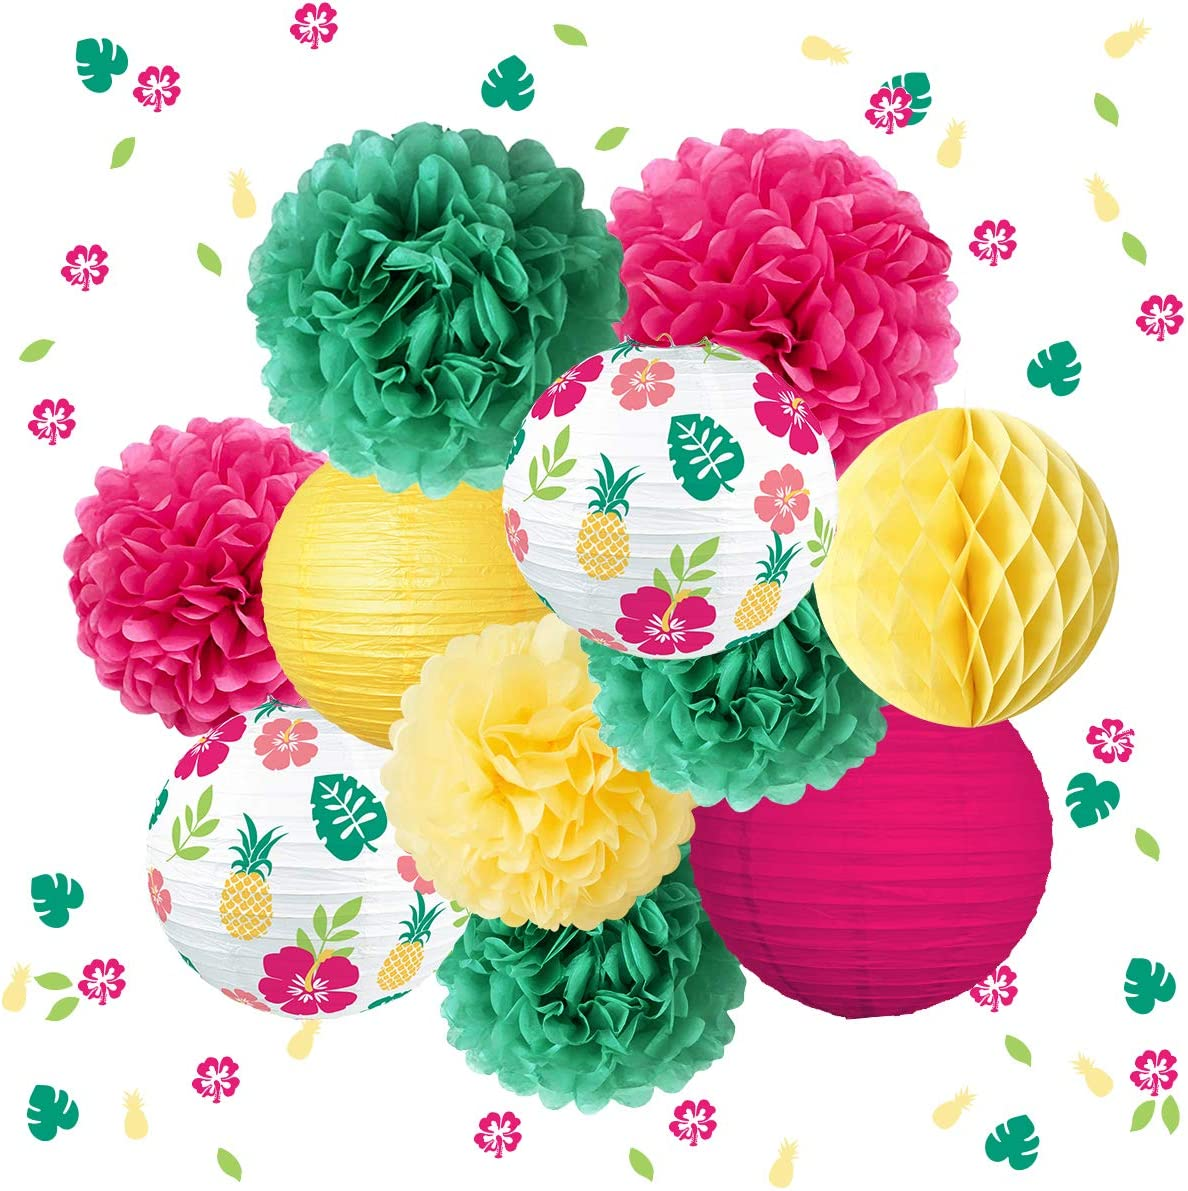 NICROLANDEE Hawaiian Tropical Party Decorations - 12Pcs Green Yellow Paper Lanterns Tropical Palm Hibiscus Flowers Confetti for Luau Party, Summer Party, Beach Party, Wedding, Birthday, Baby Shower